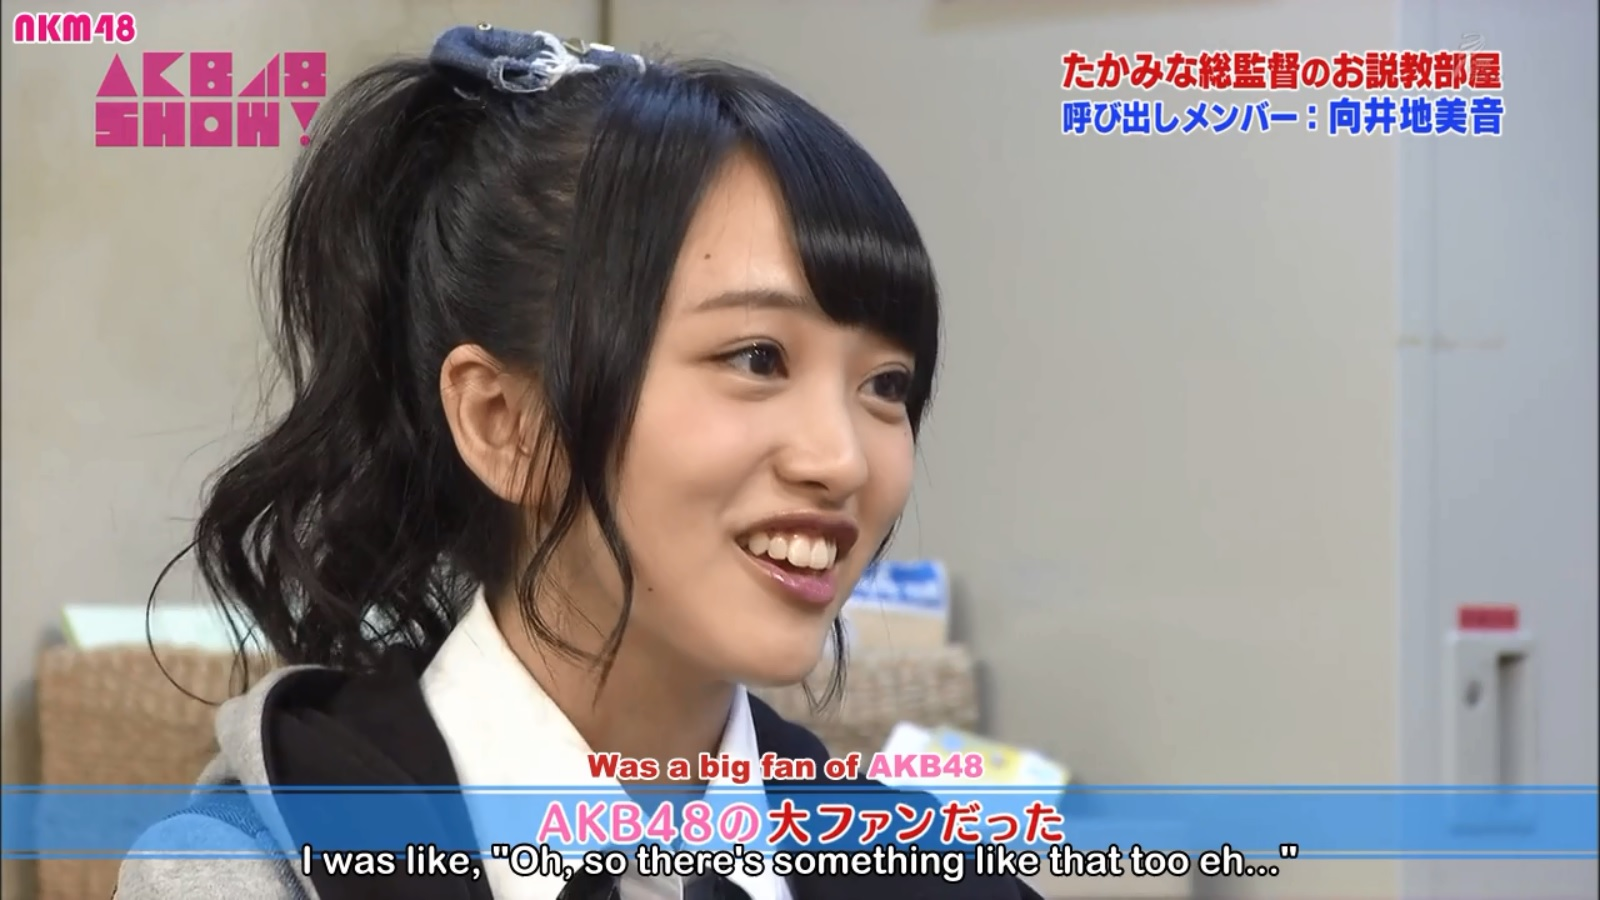 Download Akb48 Show Episode 1